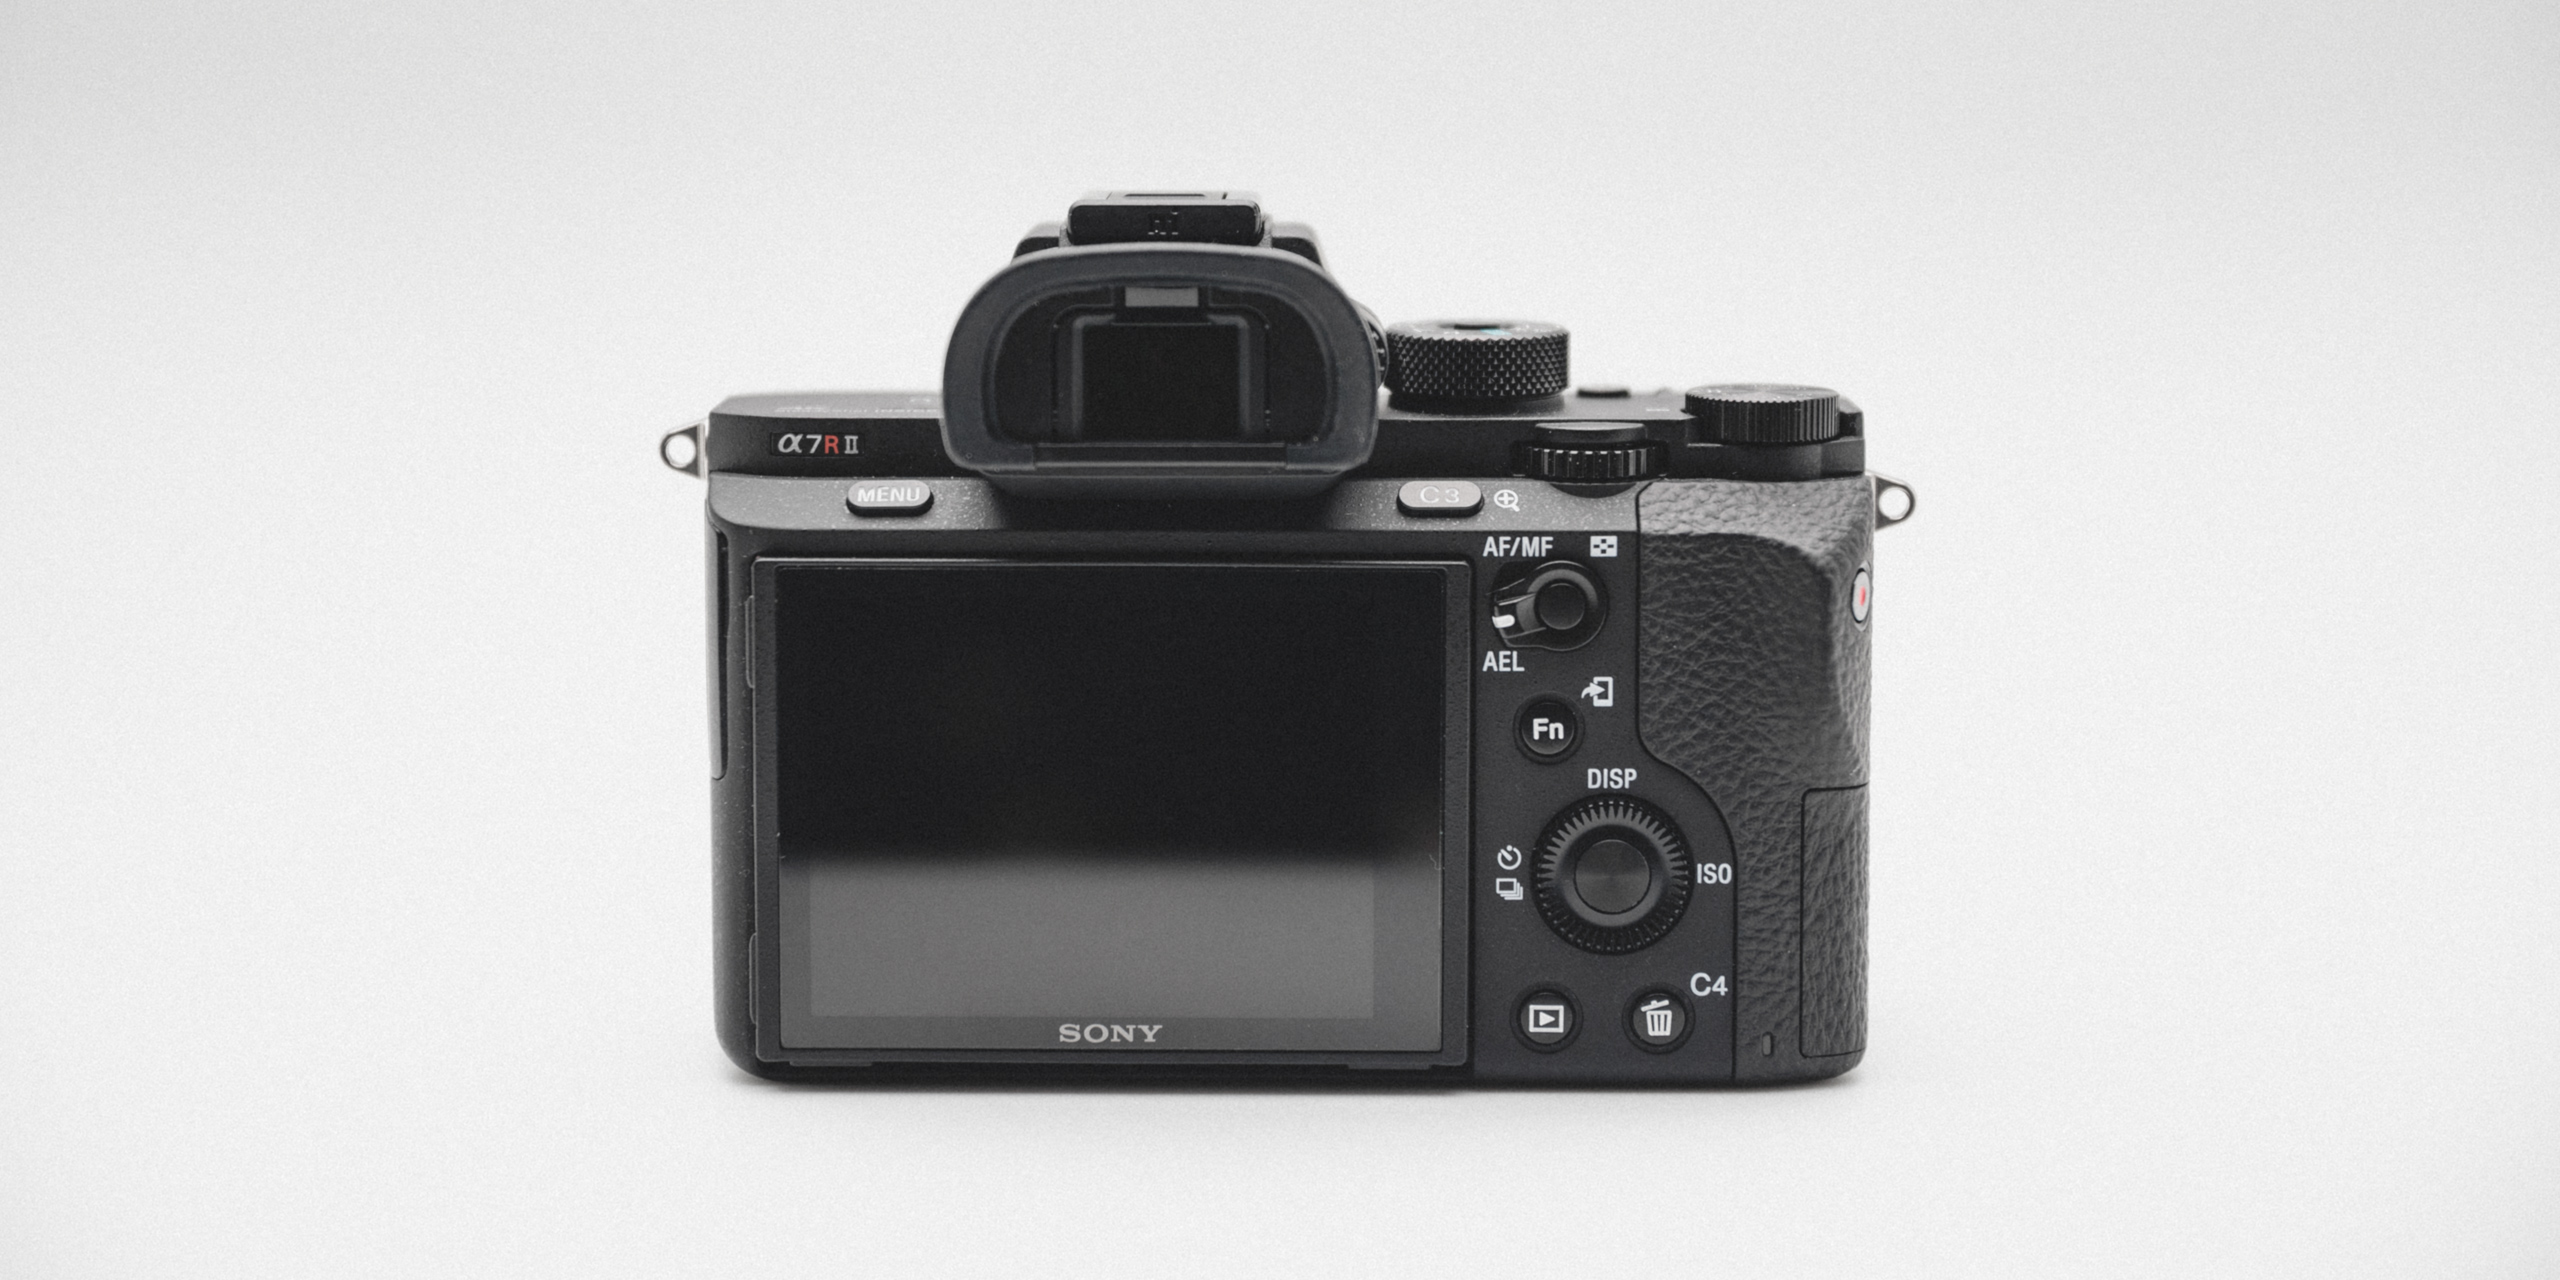 SONY A7RII back, LCD screen